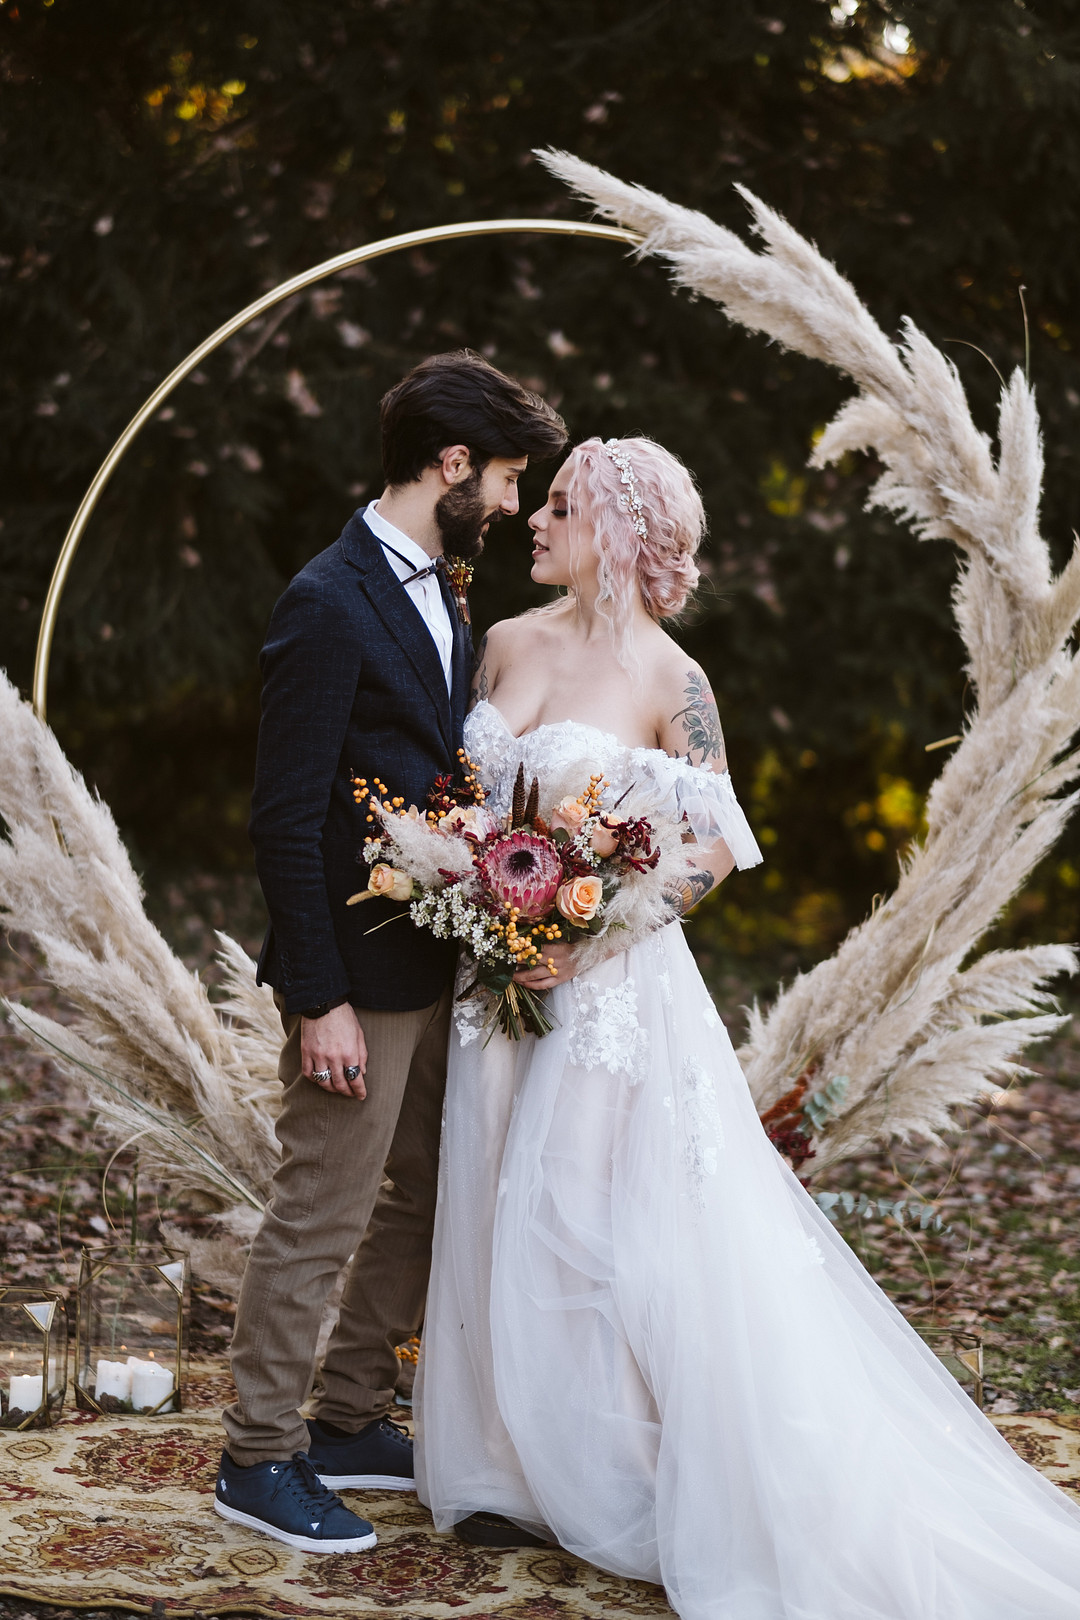 FALL WEDDING INSPO FOR THE ROCK & ROLL BRIDE